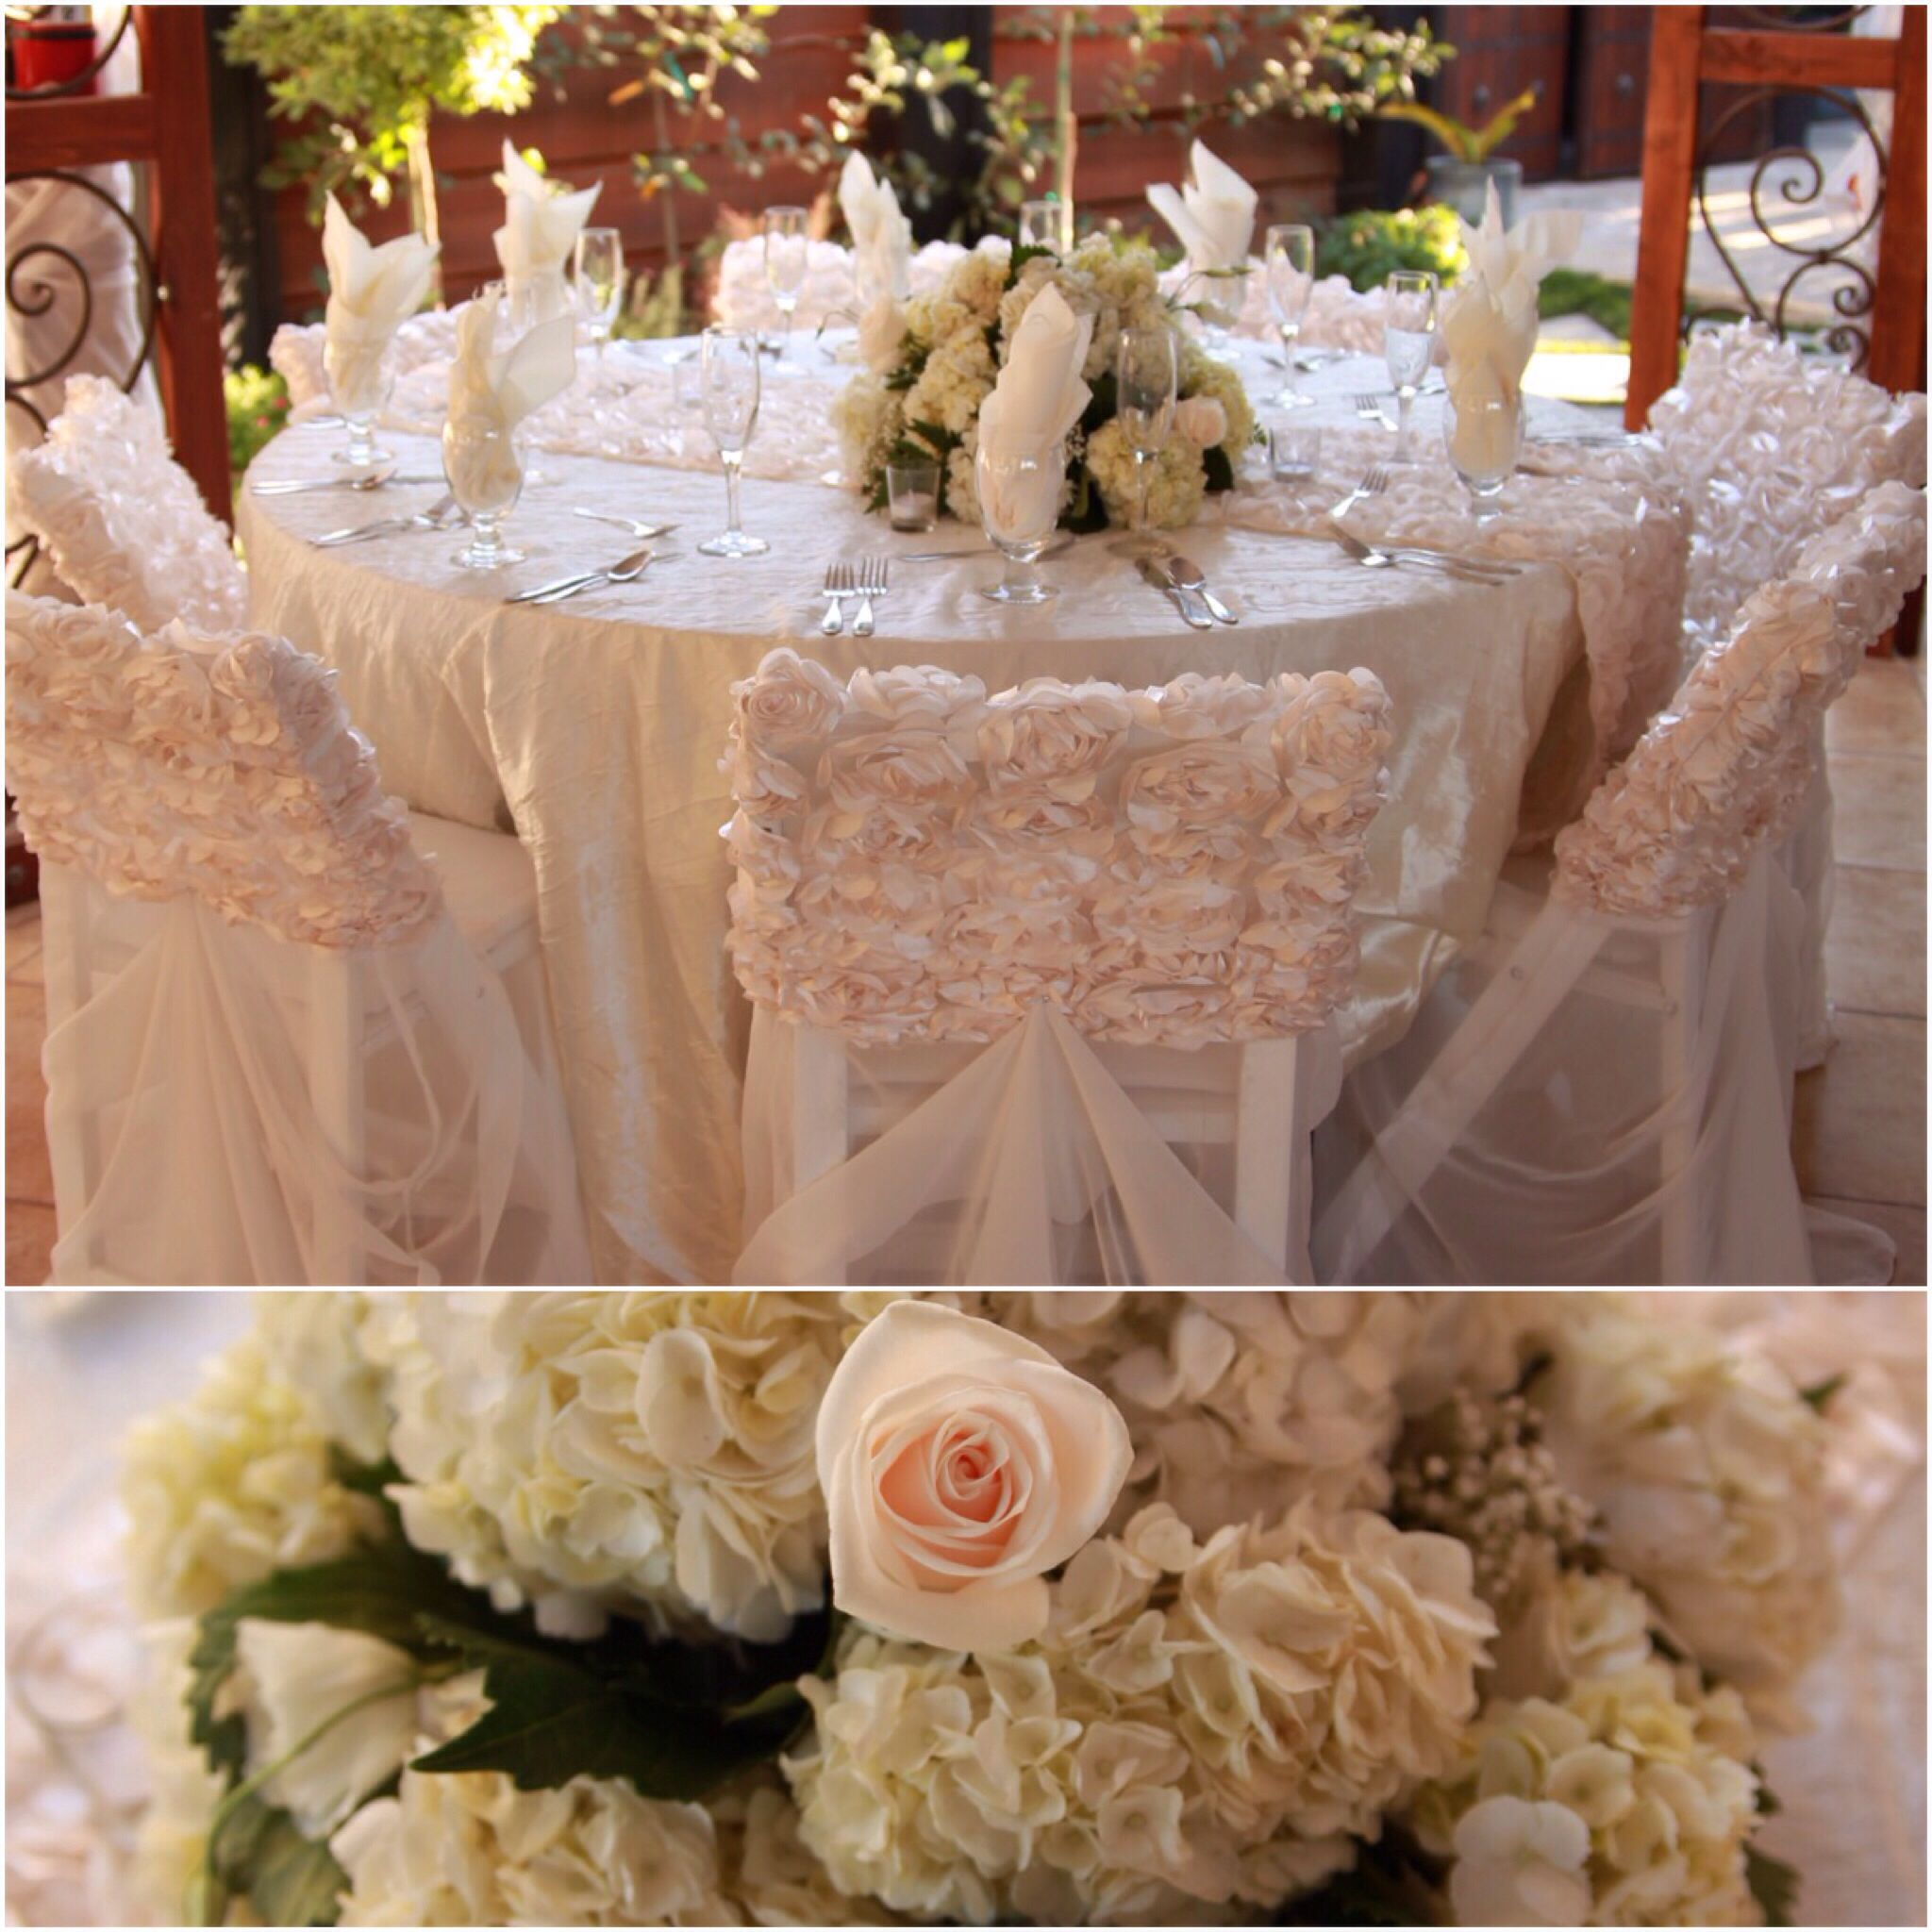 Modesto And Central Valley Wedding Planner And Event: Modesto, CA Wedding